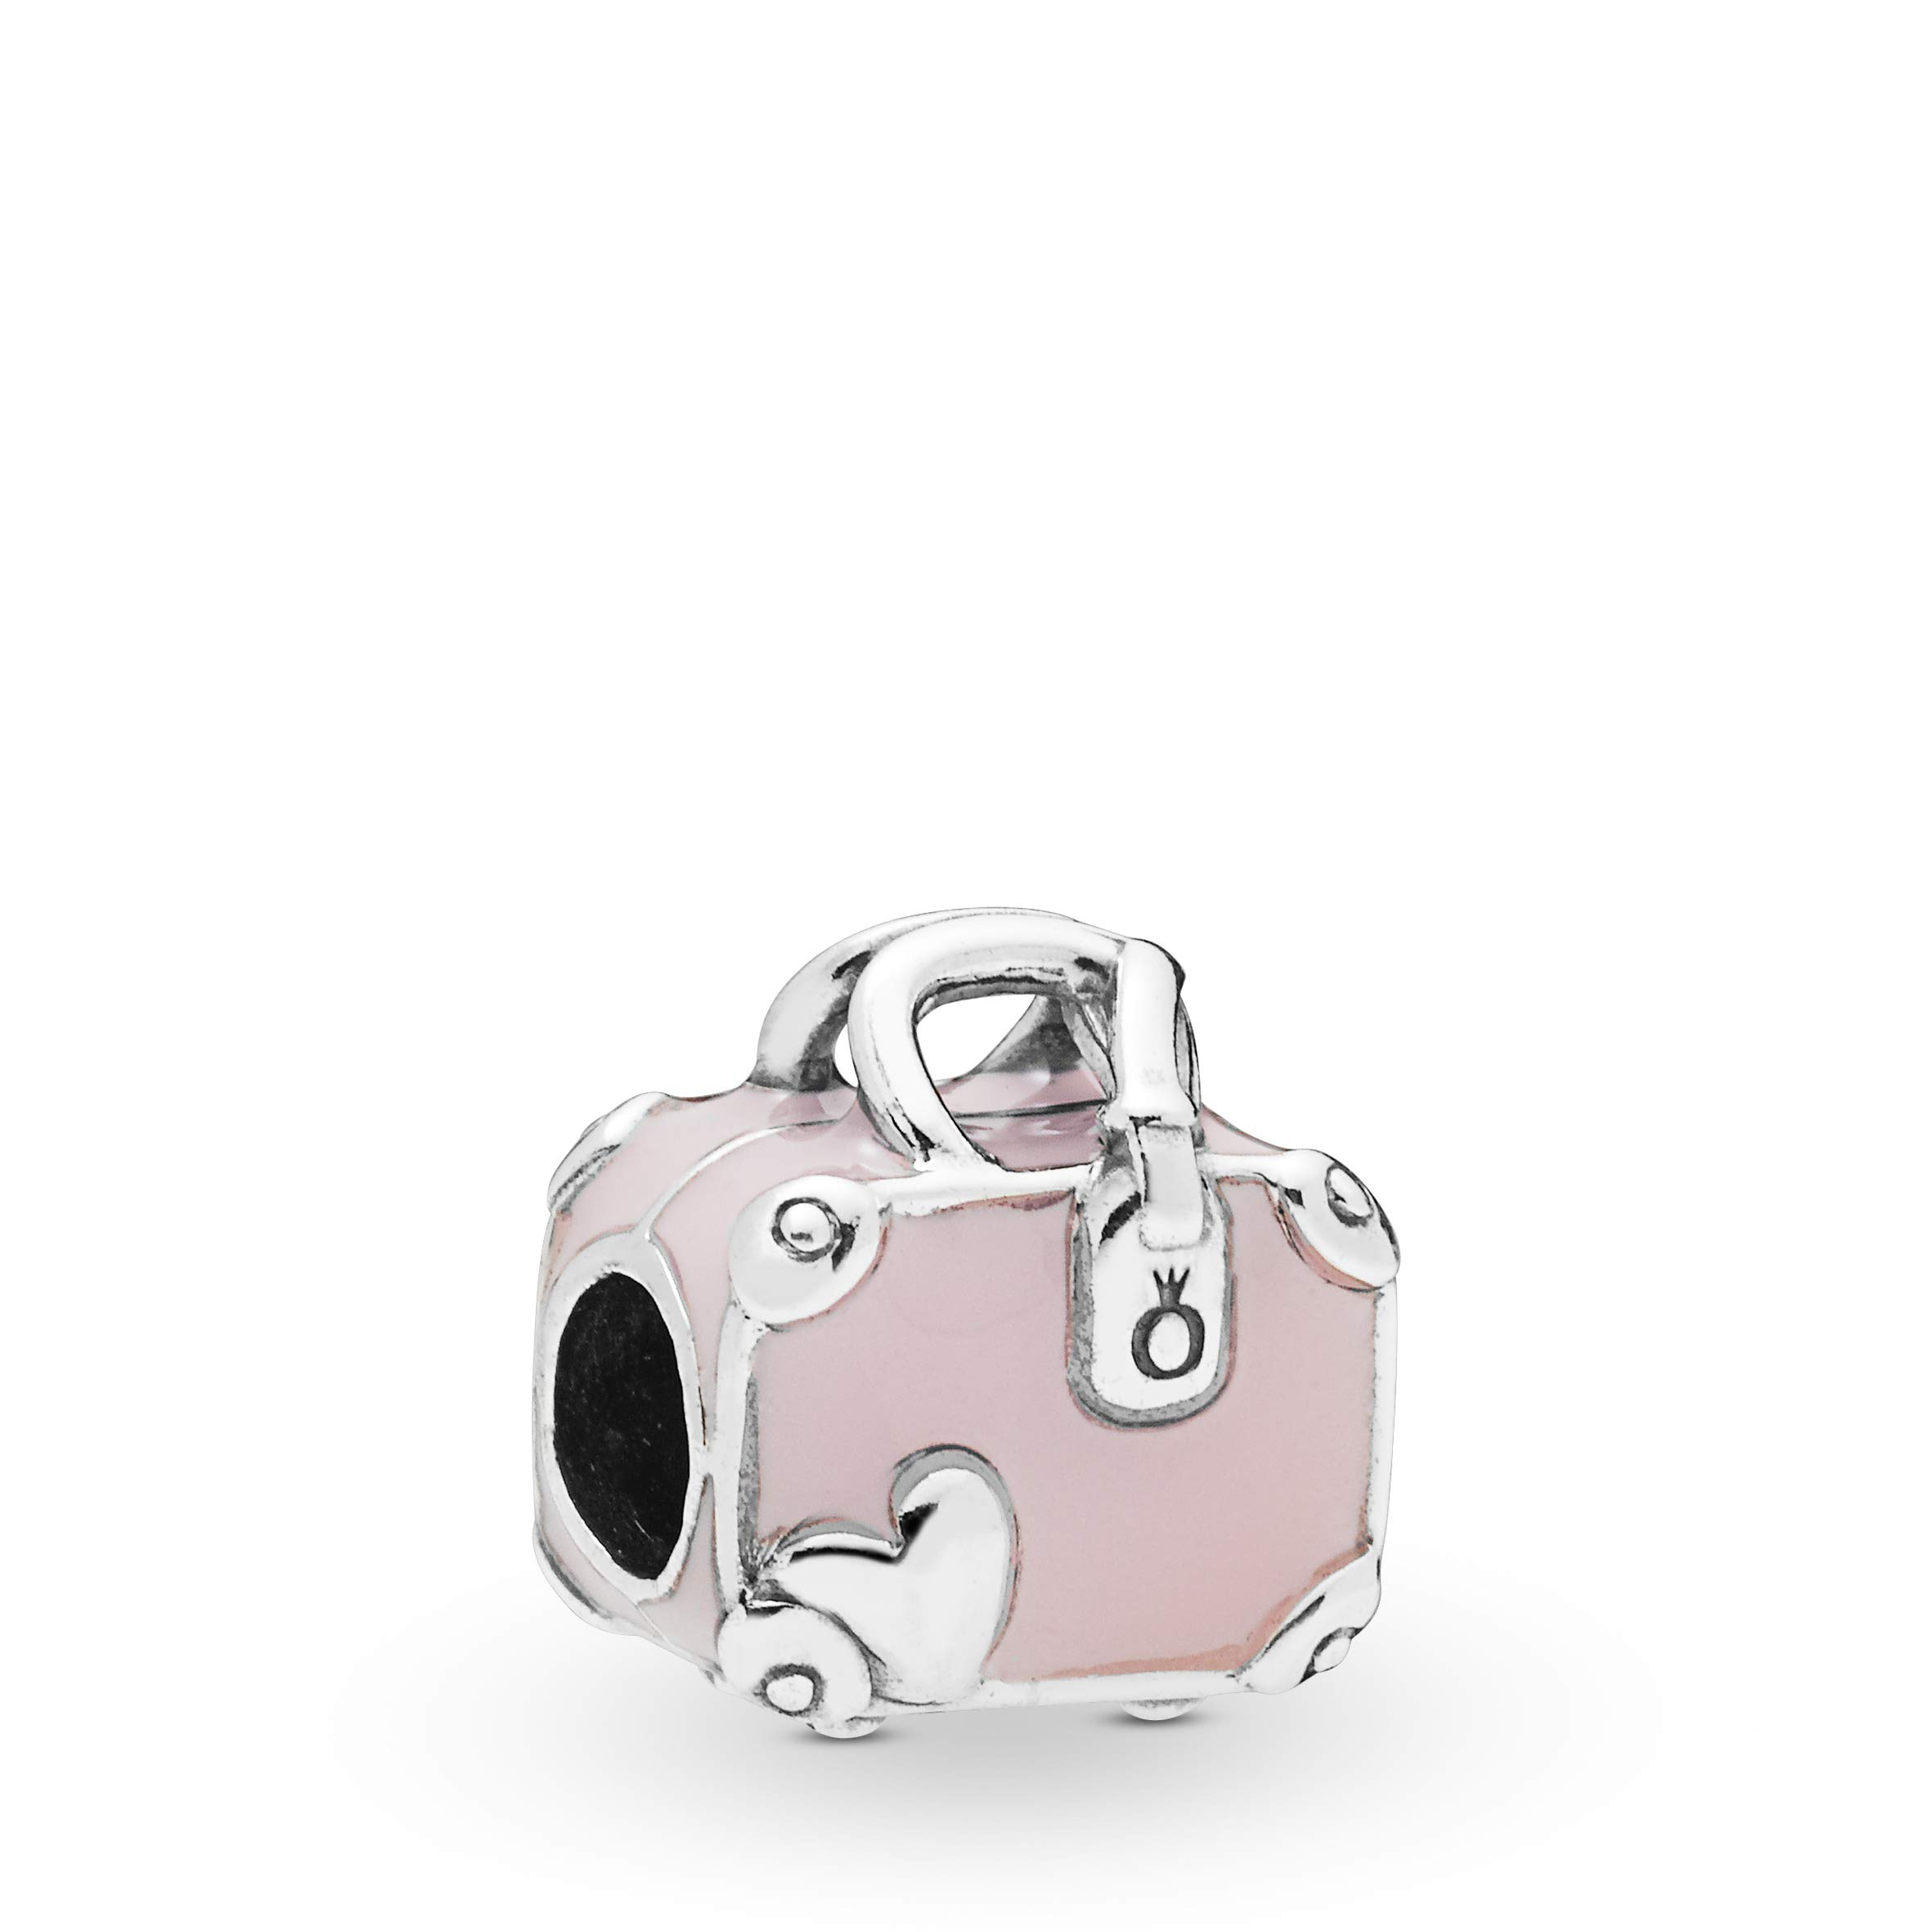 PANDORA Pink Travel Bag Vacation Trip Suitcase 925 Sterling Silver Charm - 798063EN124